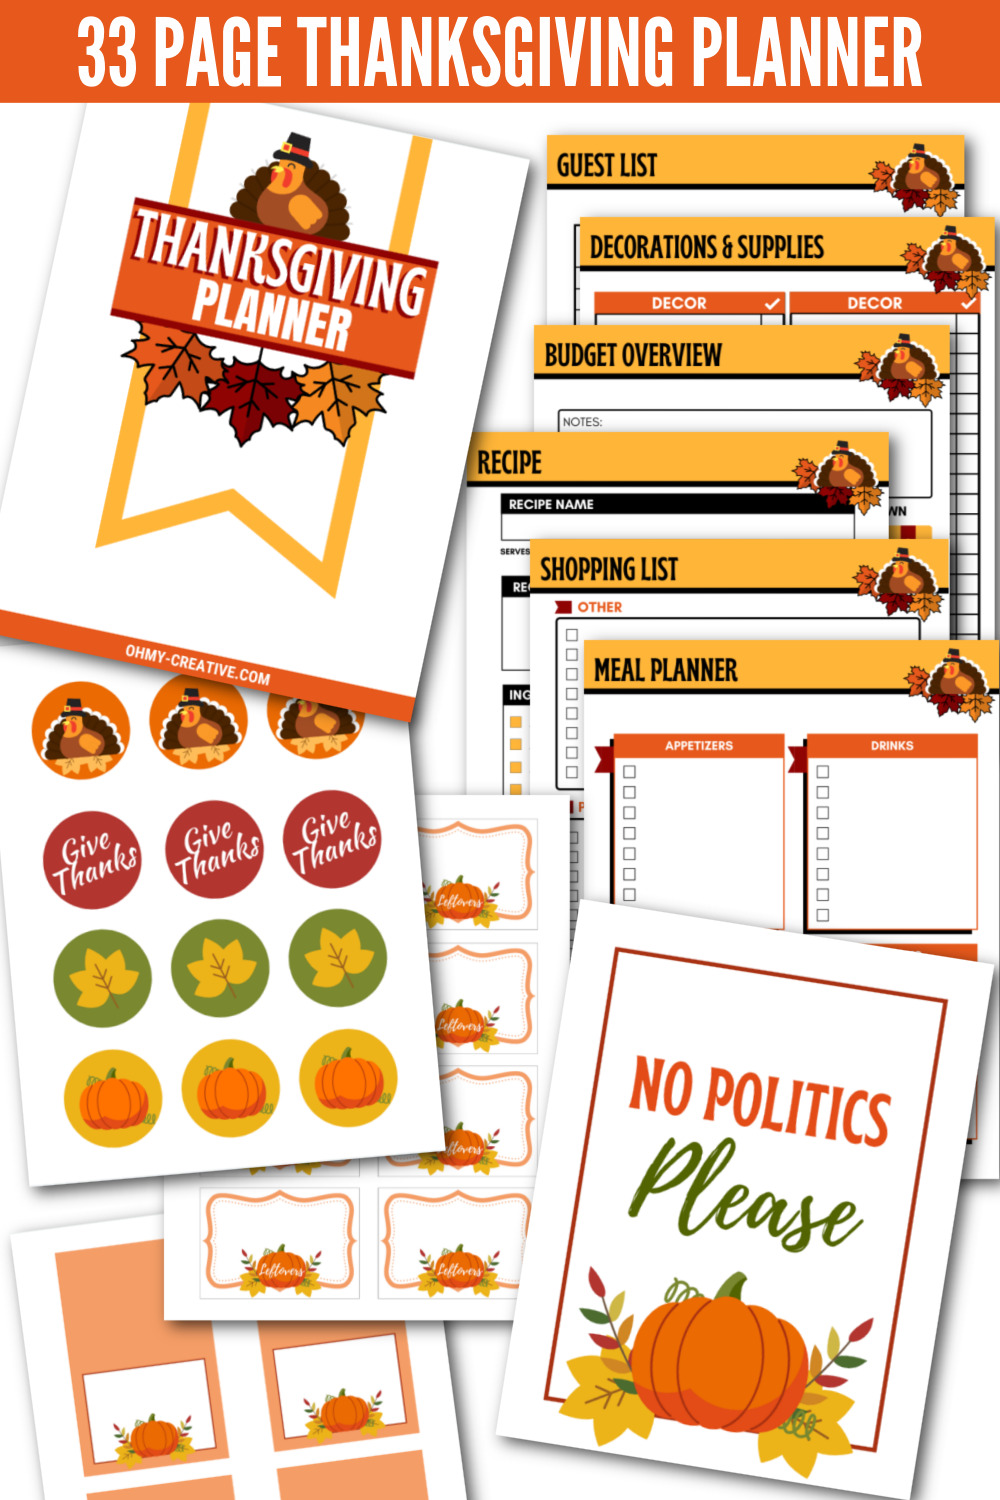 The Ultimate Thanksgiving Planner (That Will Save You Time)